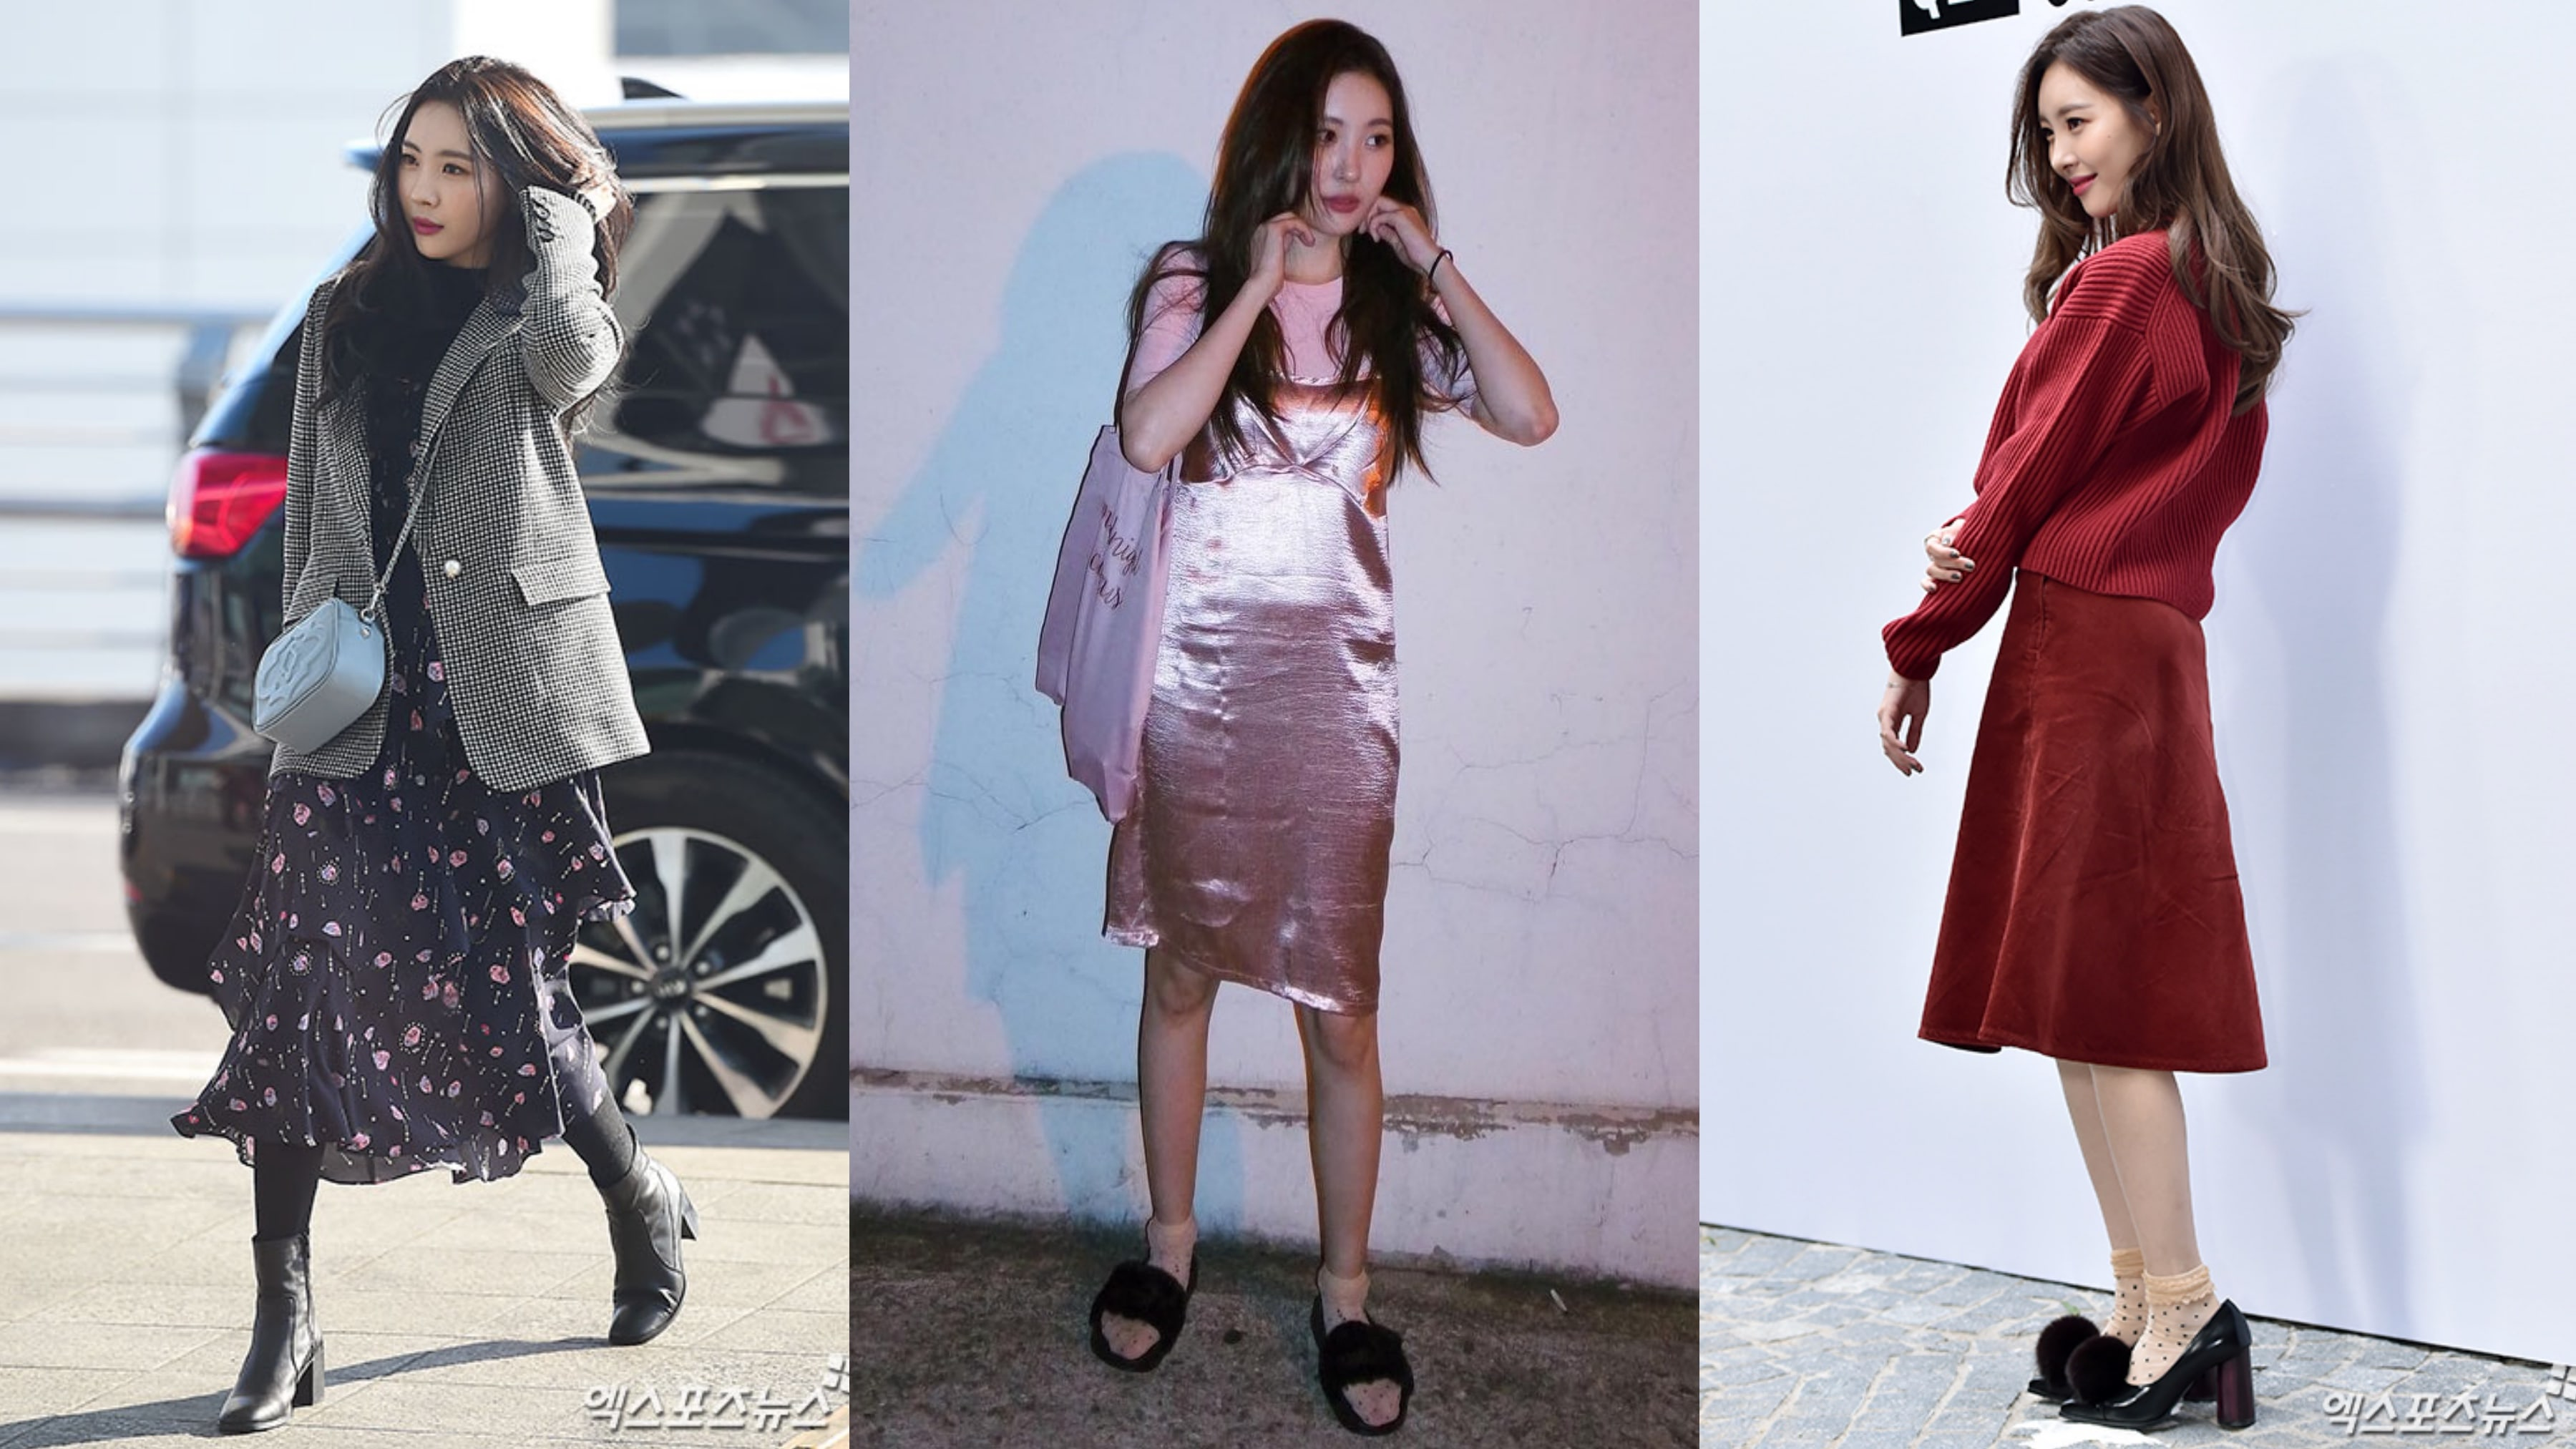 14 Styling Tips And Tricks From Sunmi's Eclectic Looks